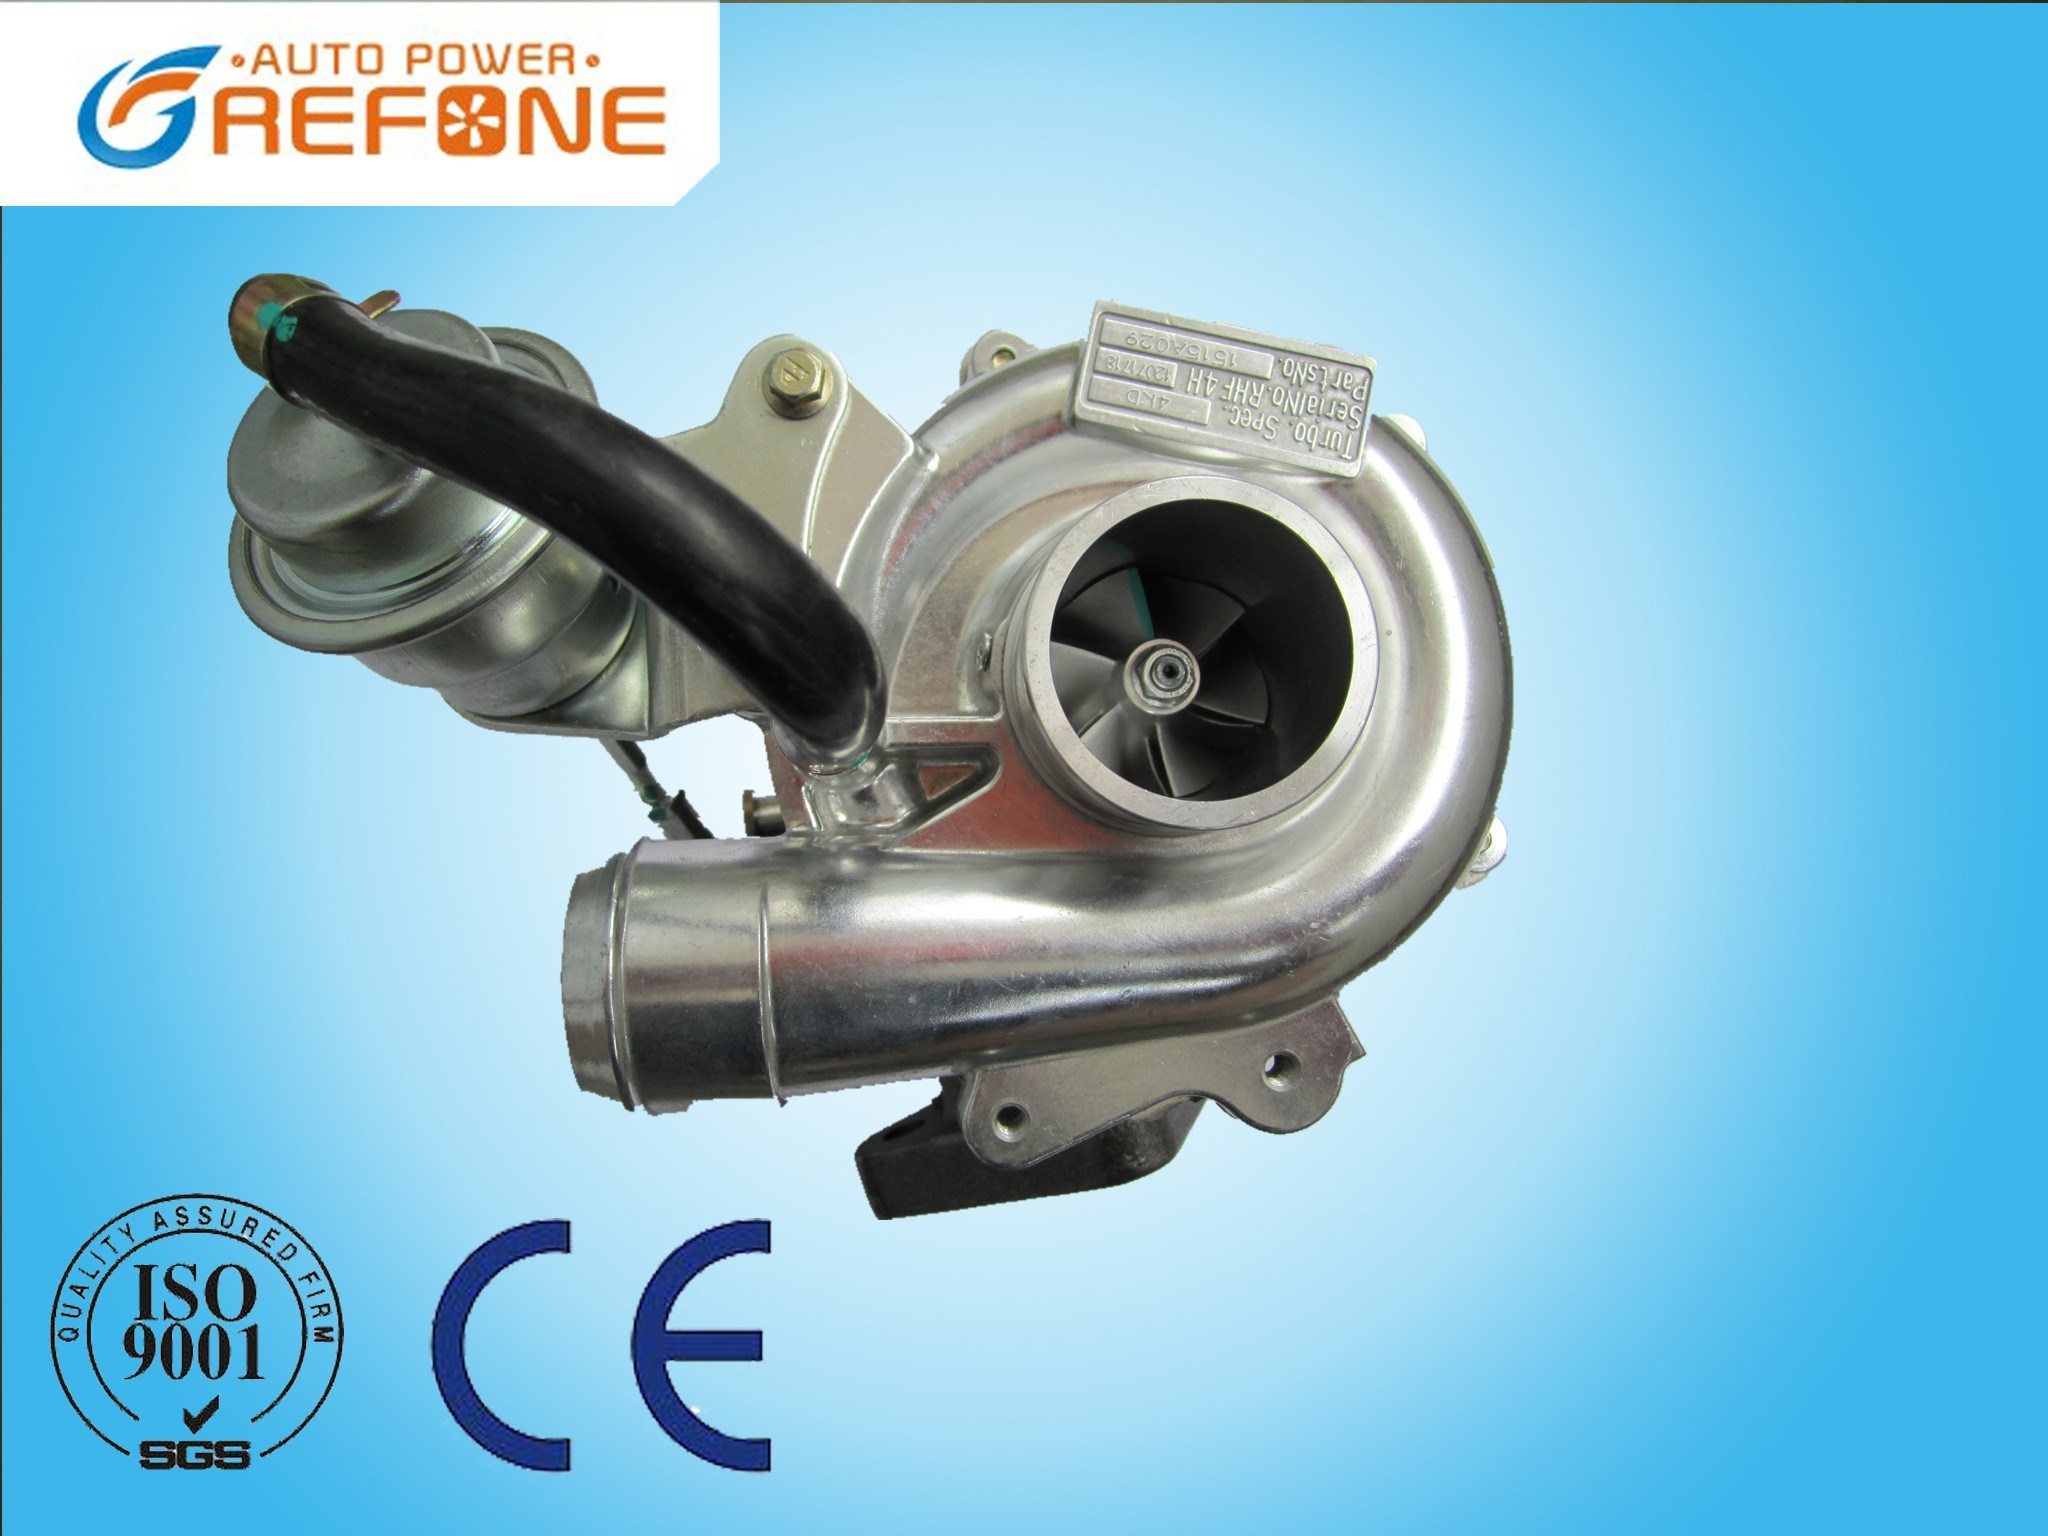 China Turbocharger Rhf4 Vb420088 Vt10 For Mitsubishi L200 Truck Turbine